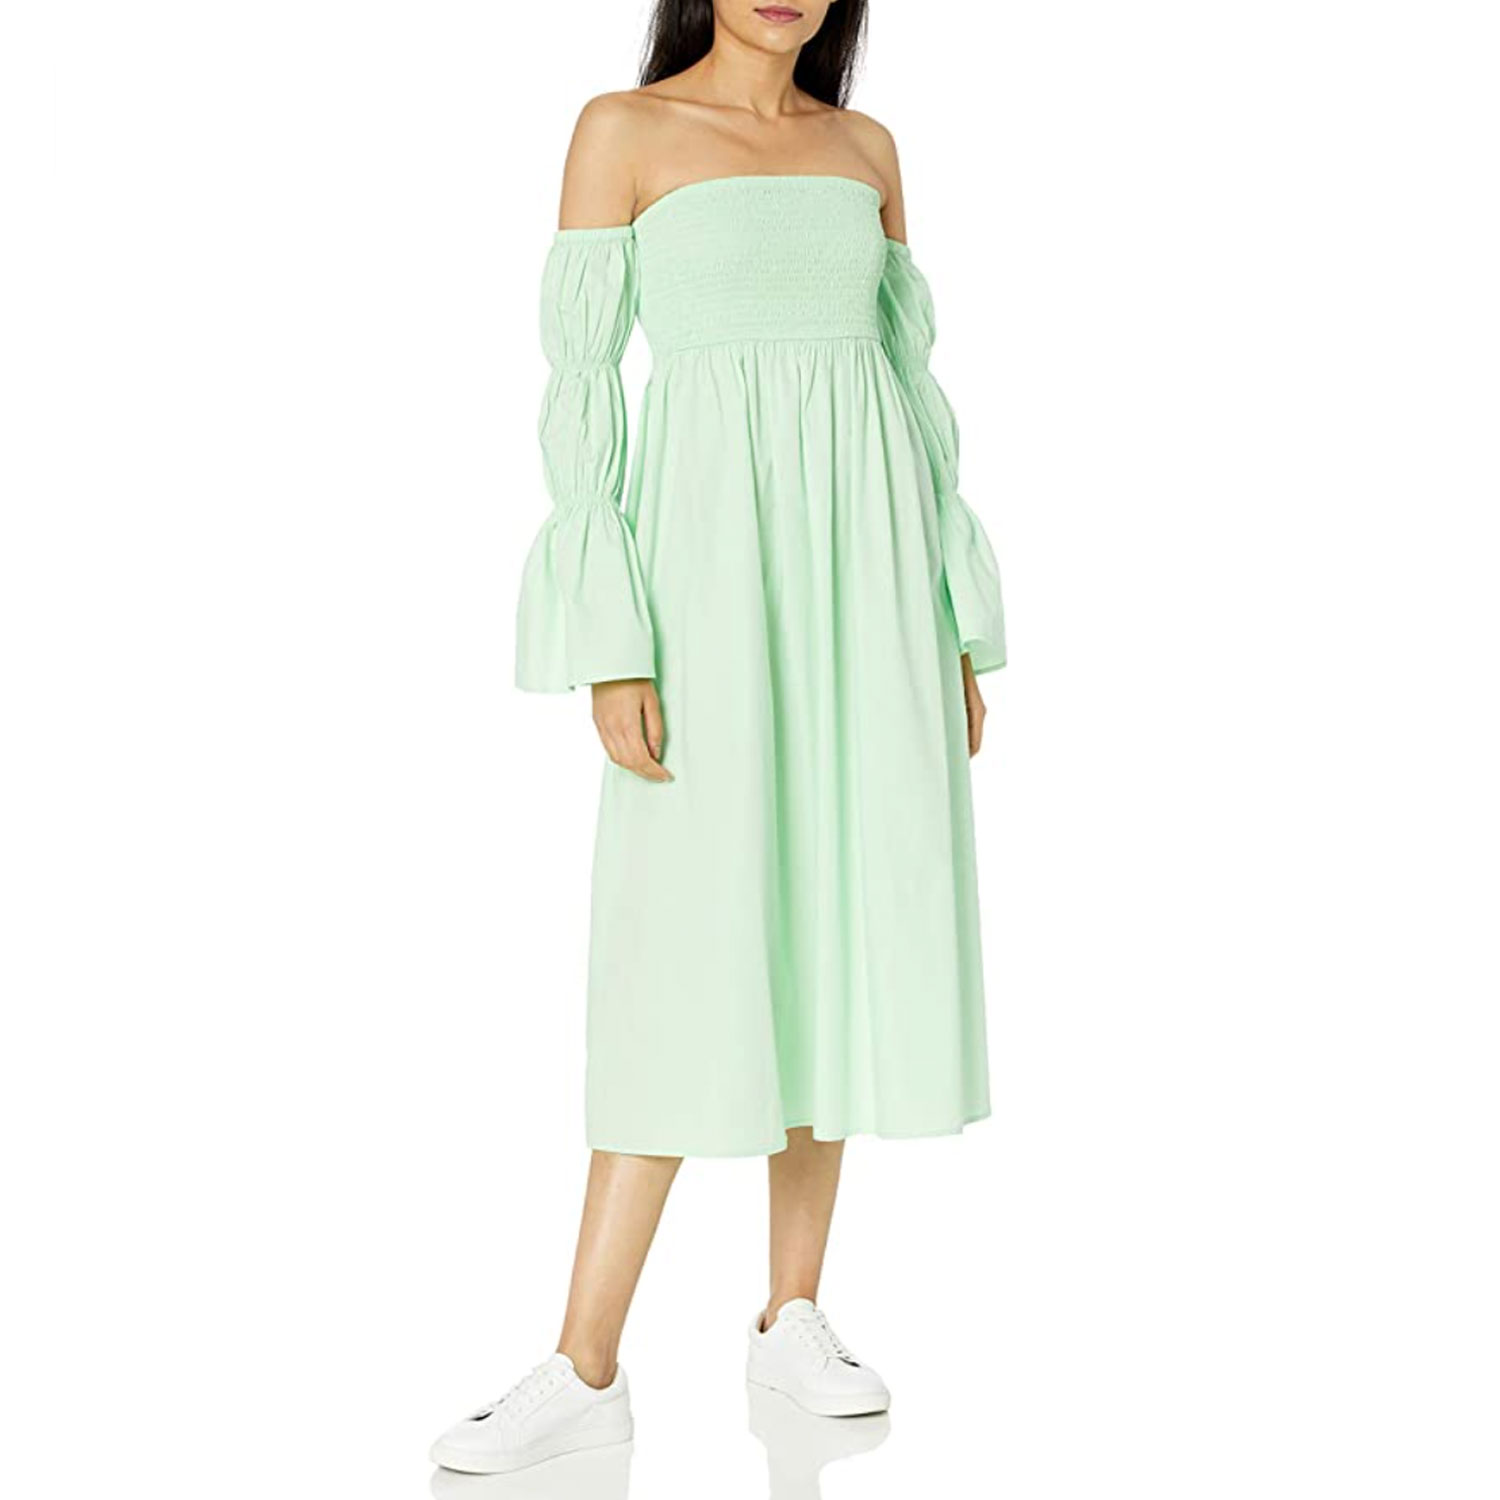 woman wearing mint green off-the-shoulder midi dress with puffed sleeves and wearing white tennis shoes